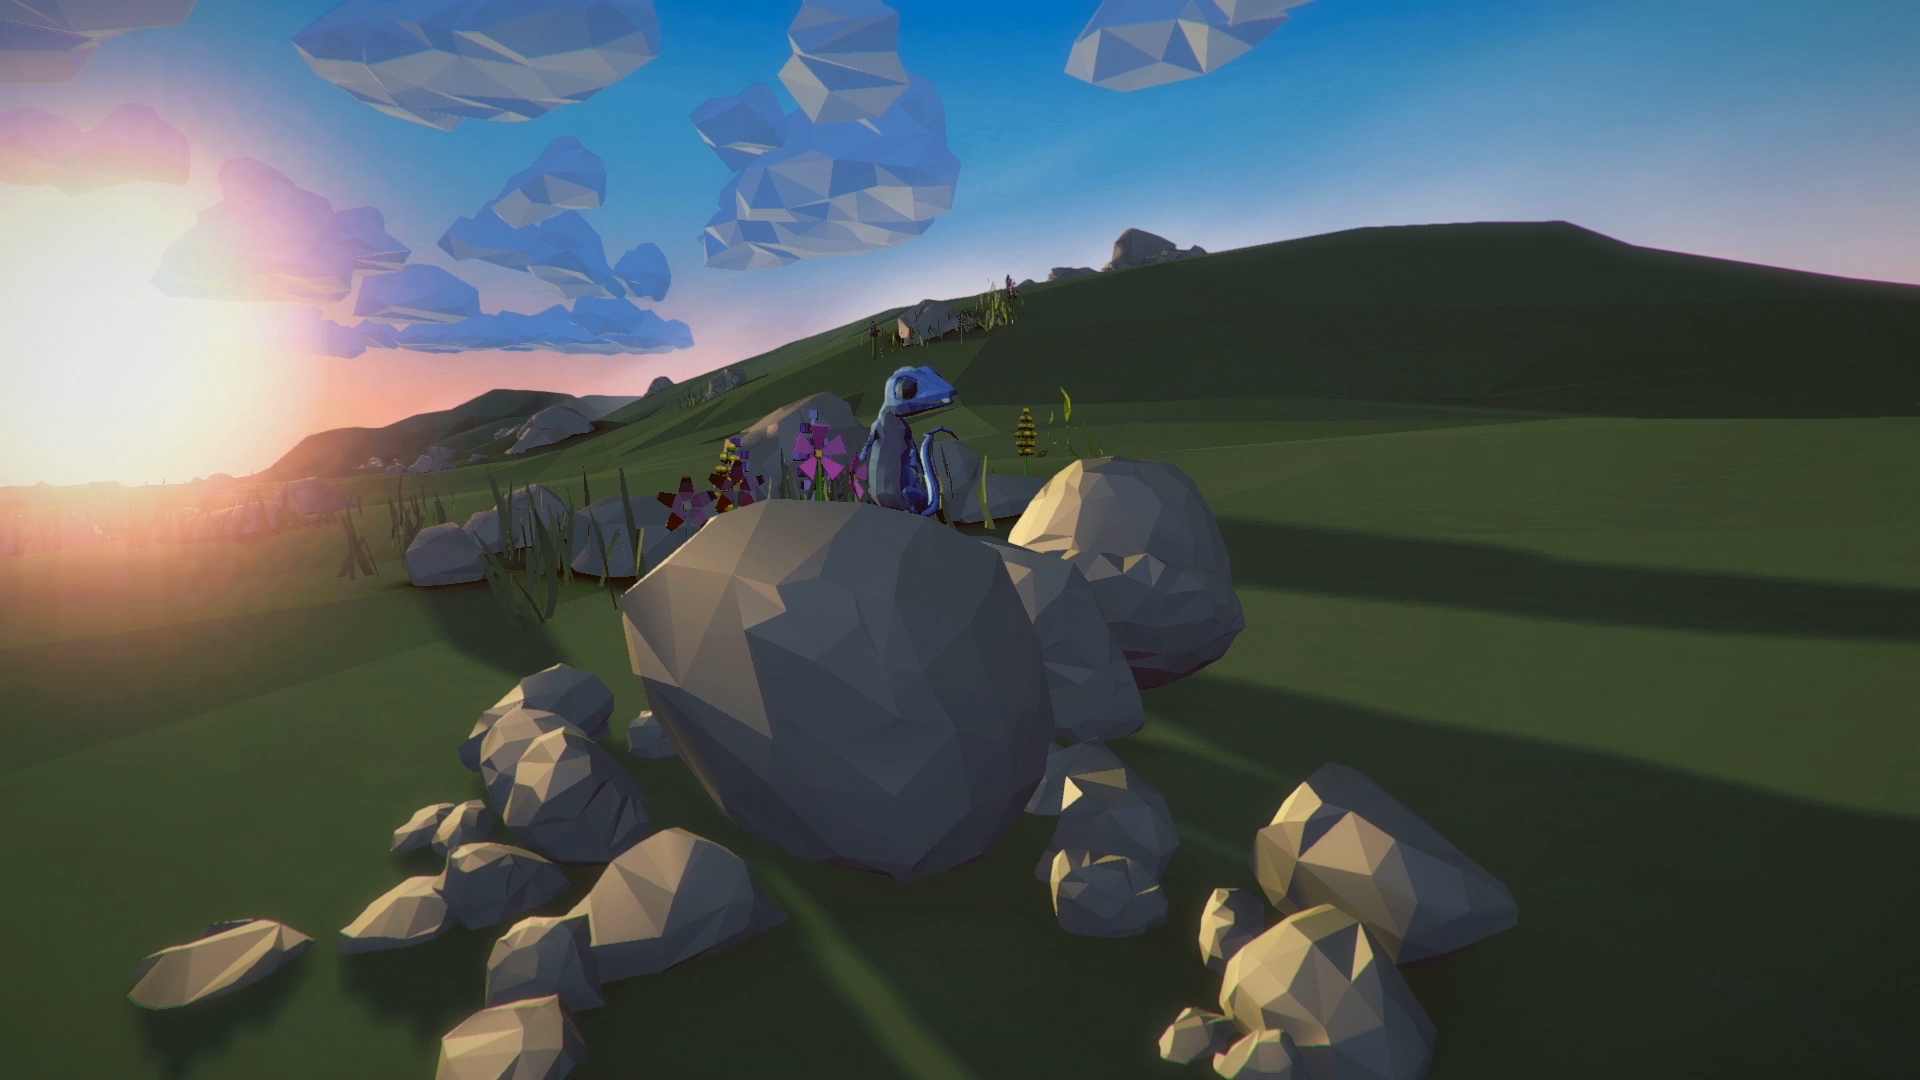 The Last Mountain VR